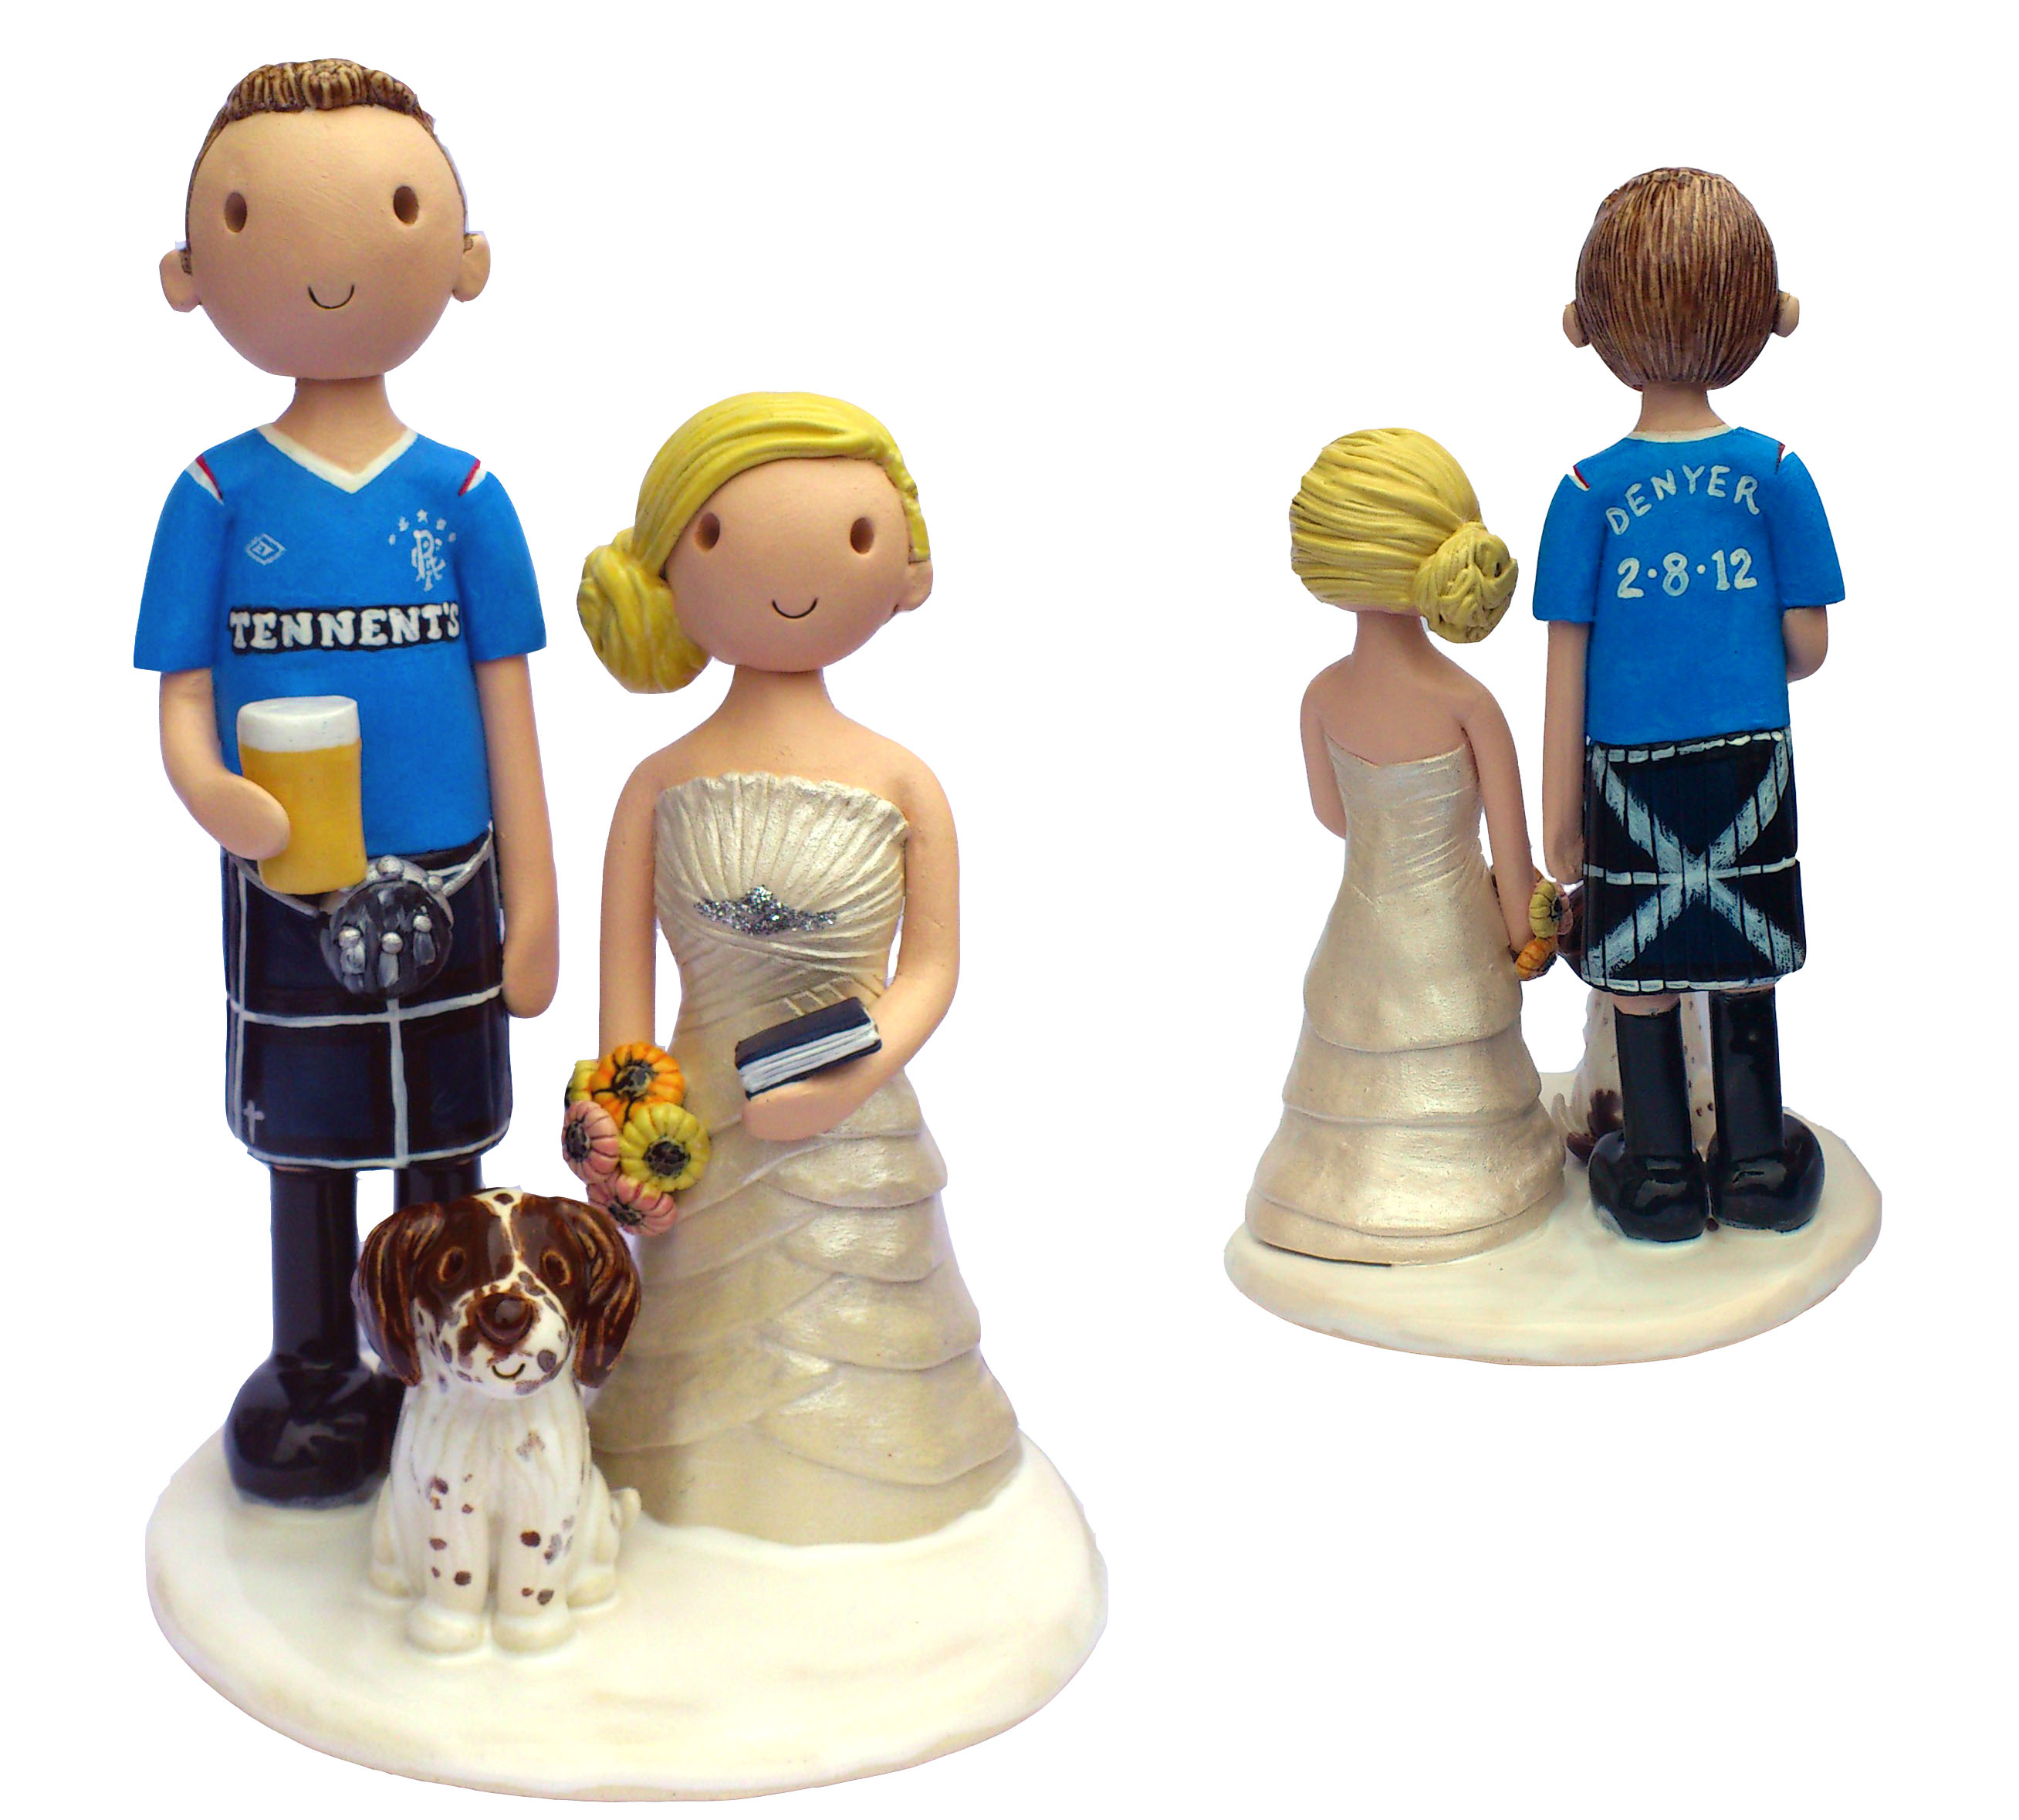 Cake toppers back to front!